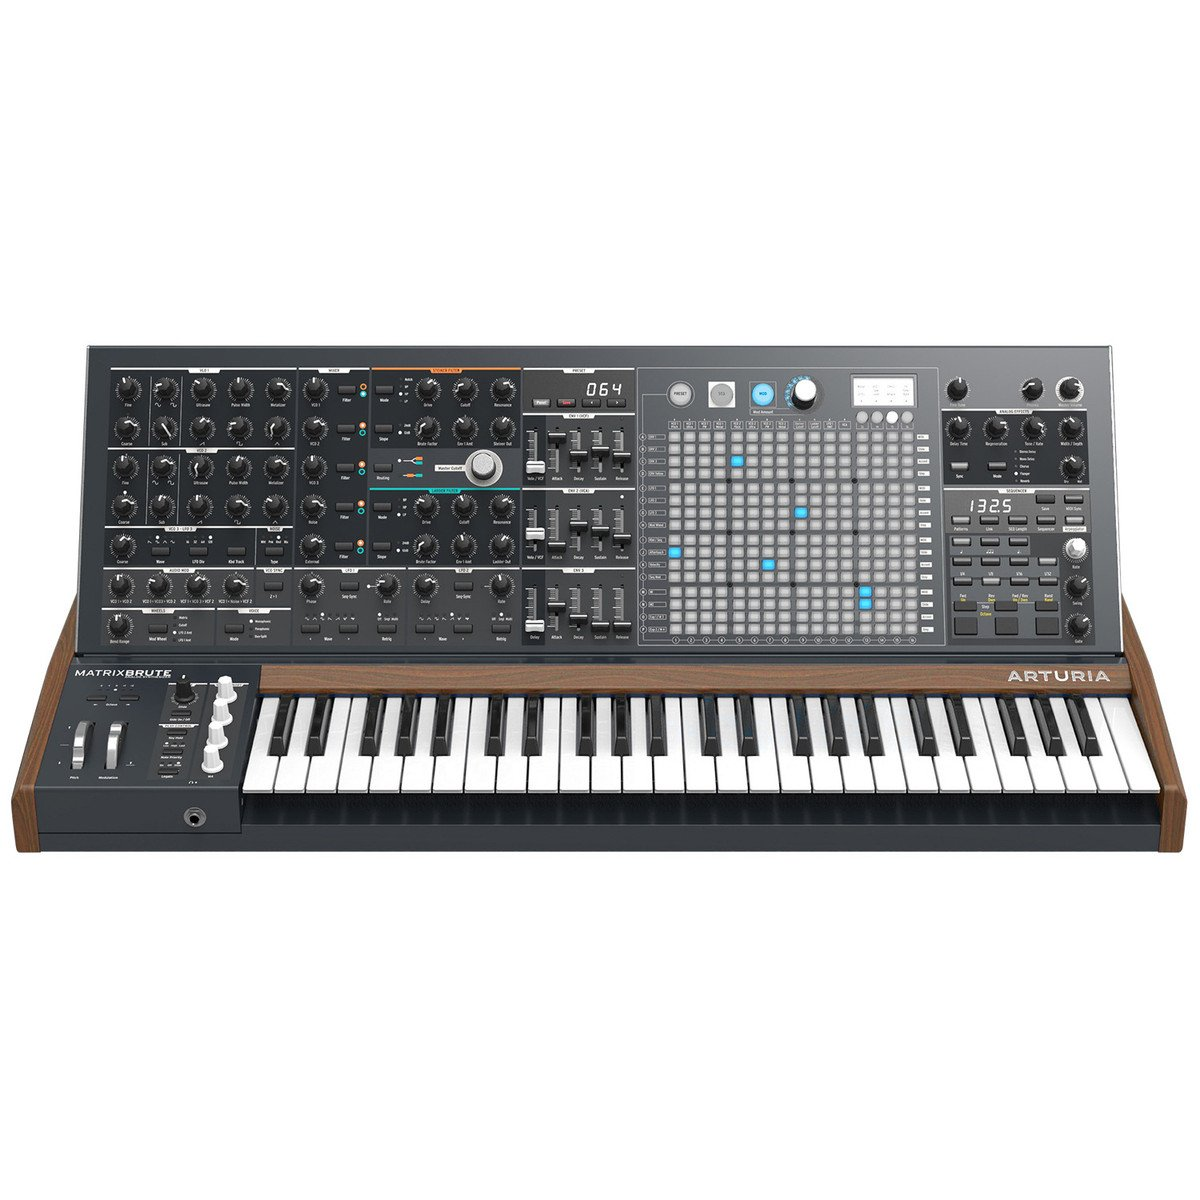 Arturia MatrixBrute Analog Monophonic Synthesizer with 1 Year Free Extended Warranty by Arturia